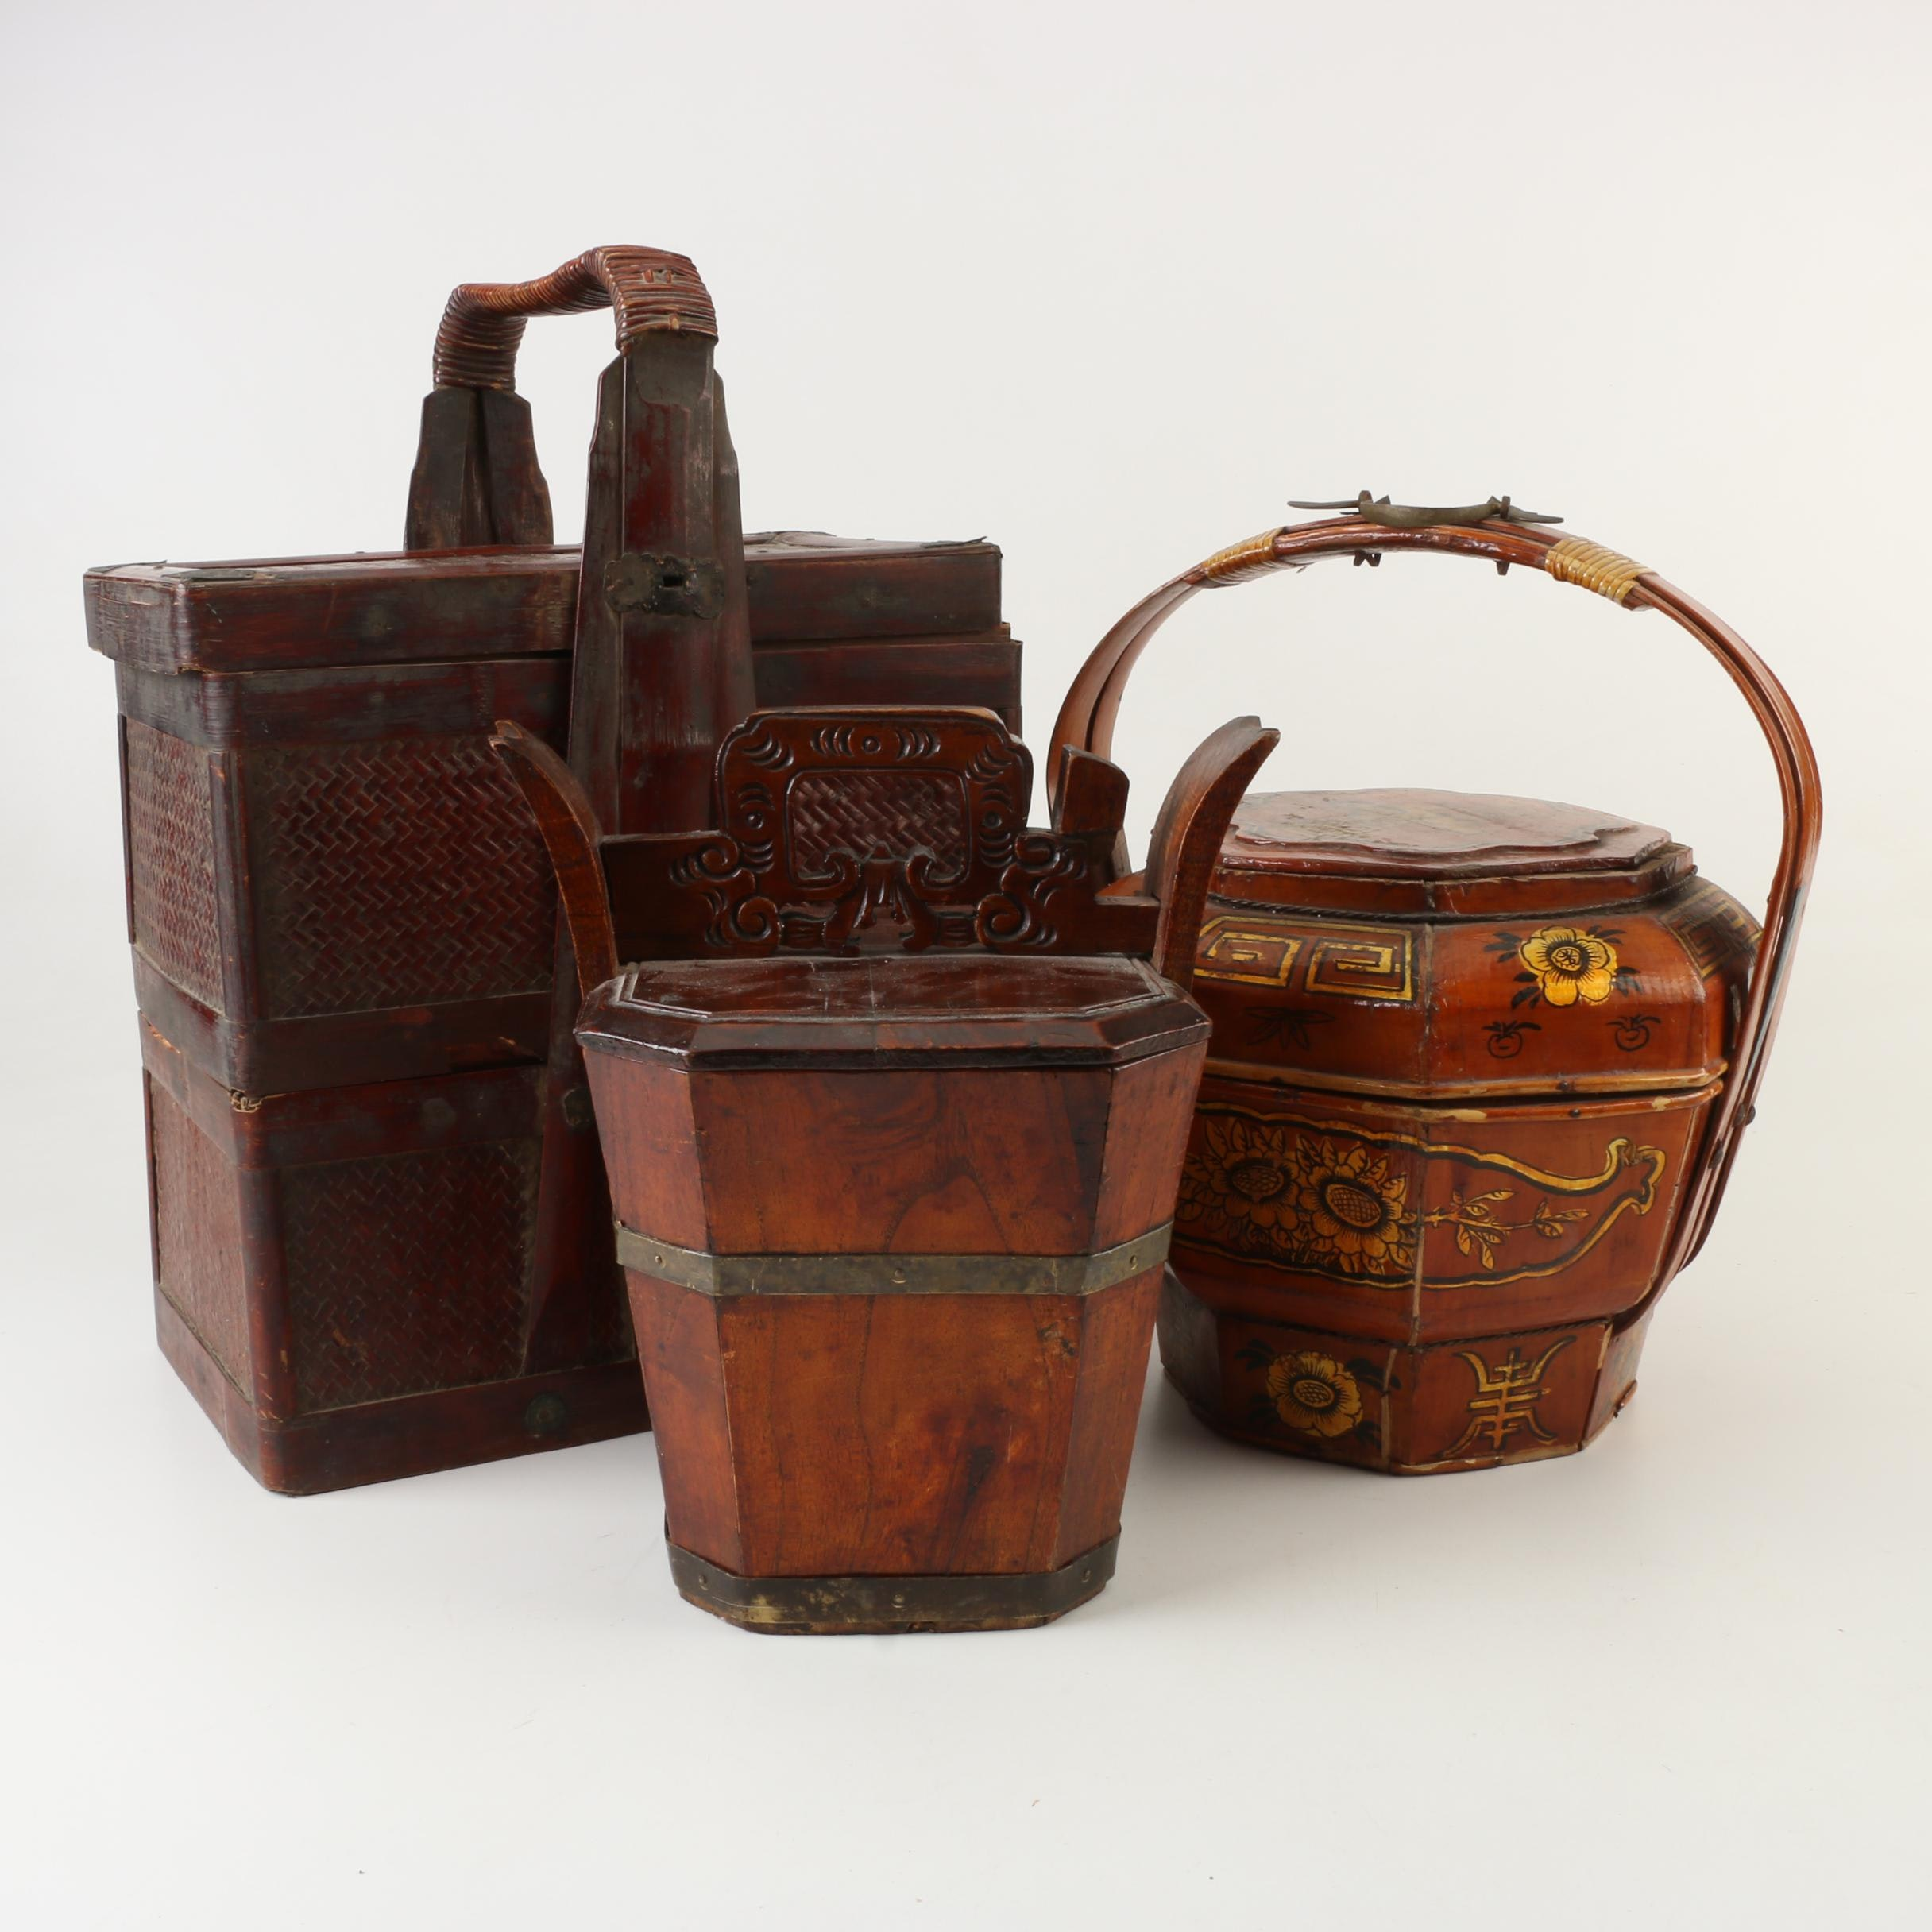 Chinese Wooden Water Bucket and Wedding Baskets